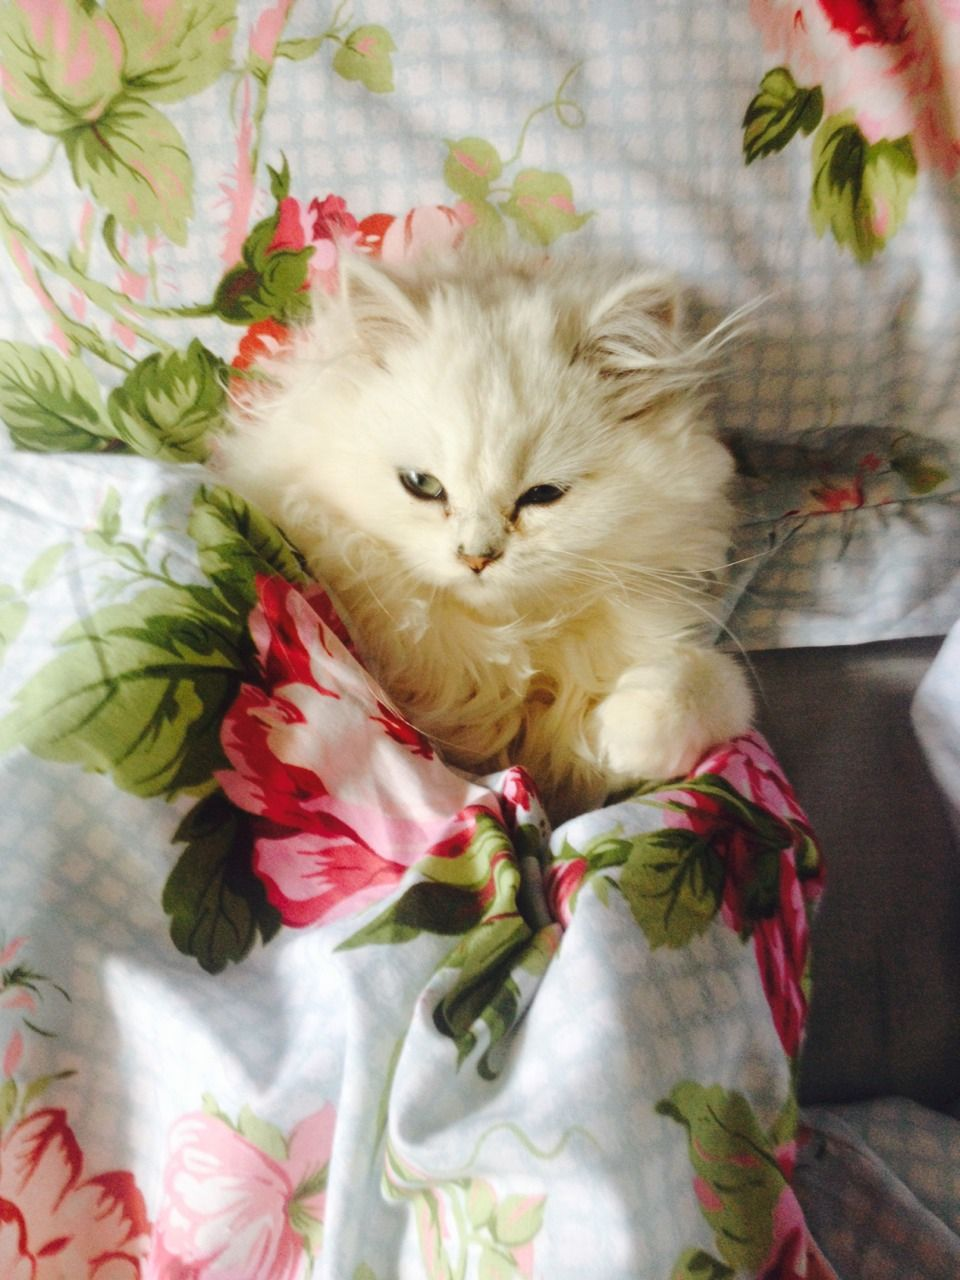 Pin by Callie Seim on fauna (With images) Kittens cutest